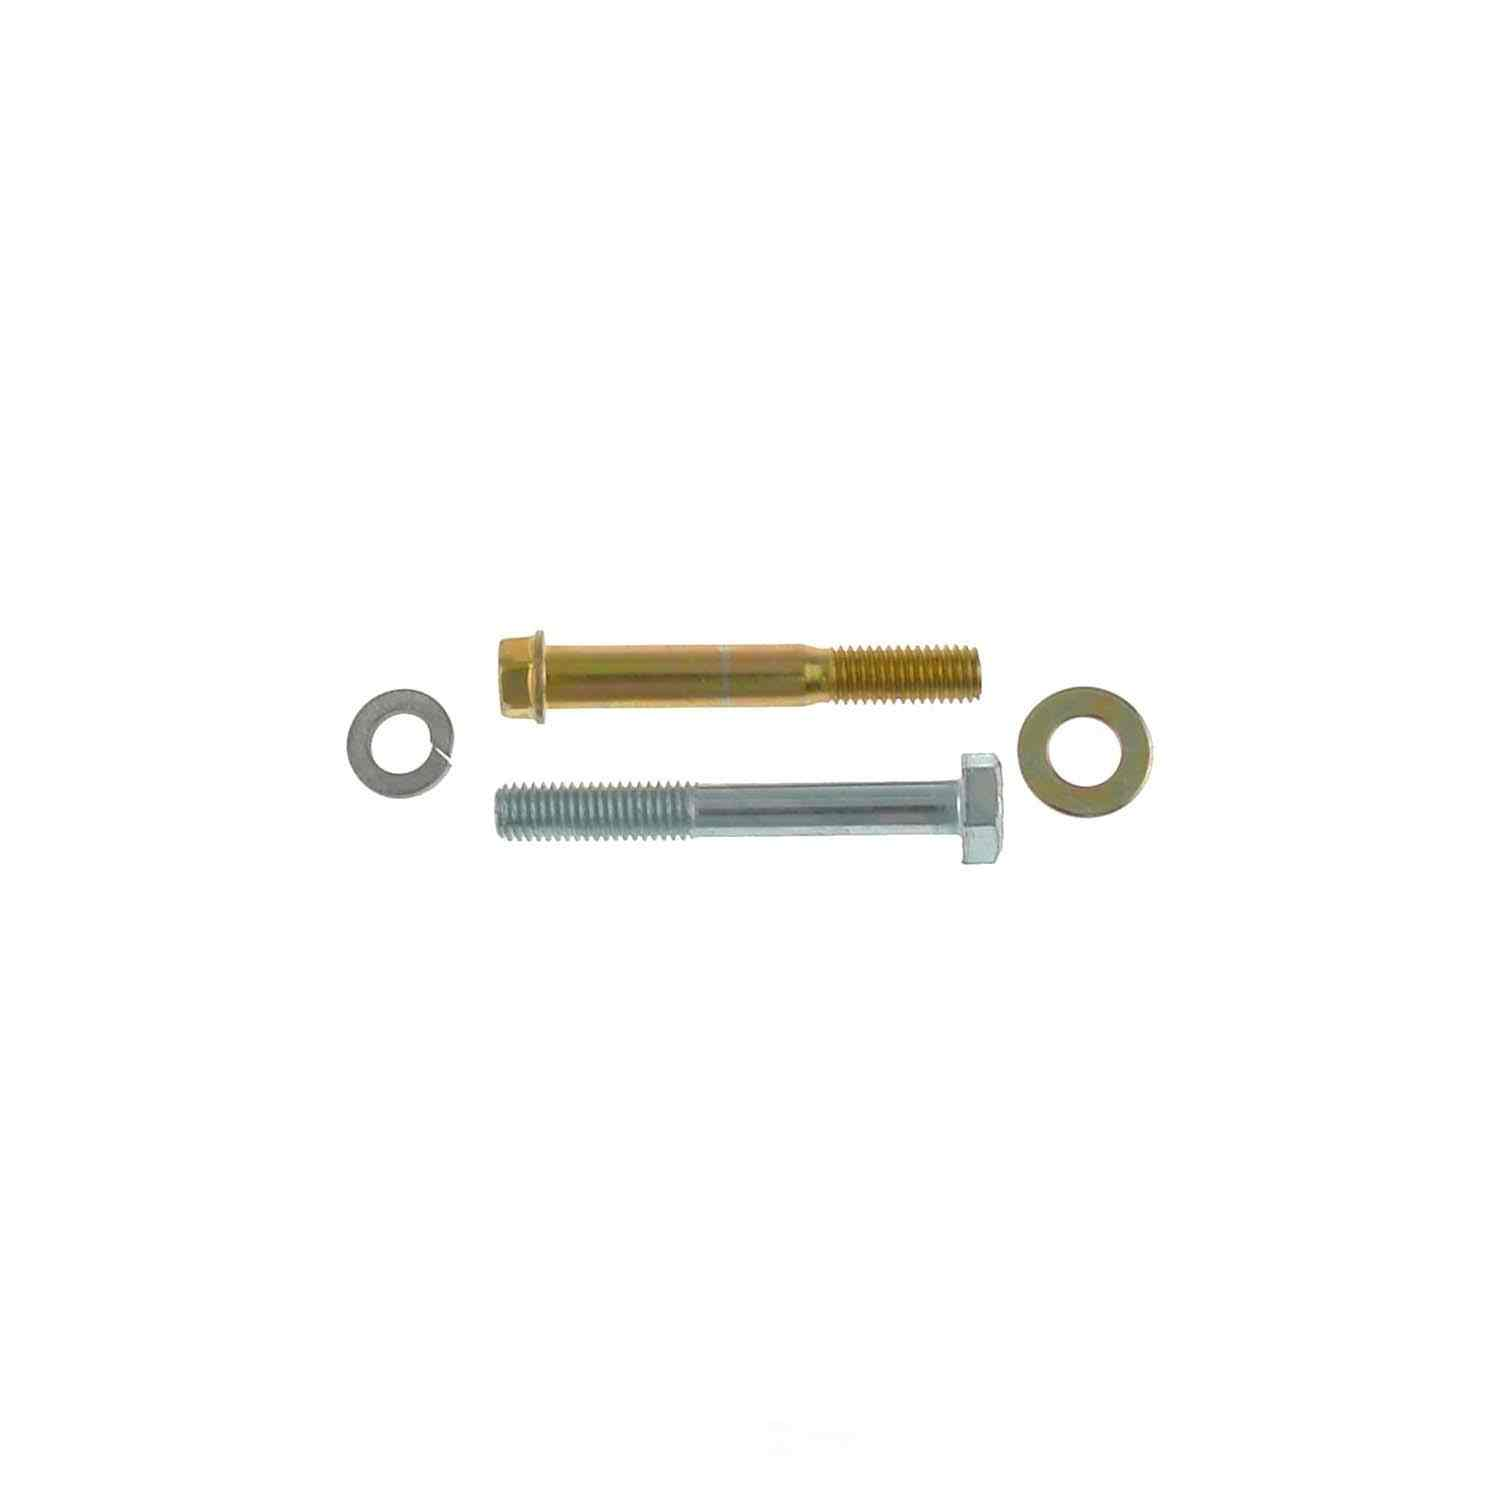 CARLSON QUALITY BRAKE PARTS - Disc Brake Caliper Pin Kit - CRL 14088